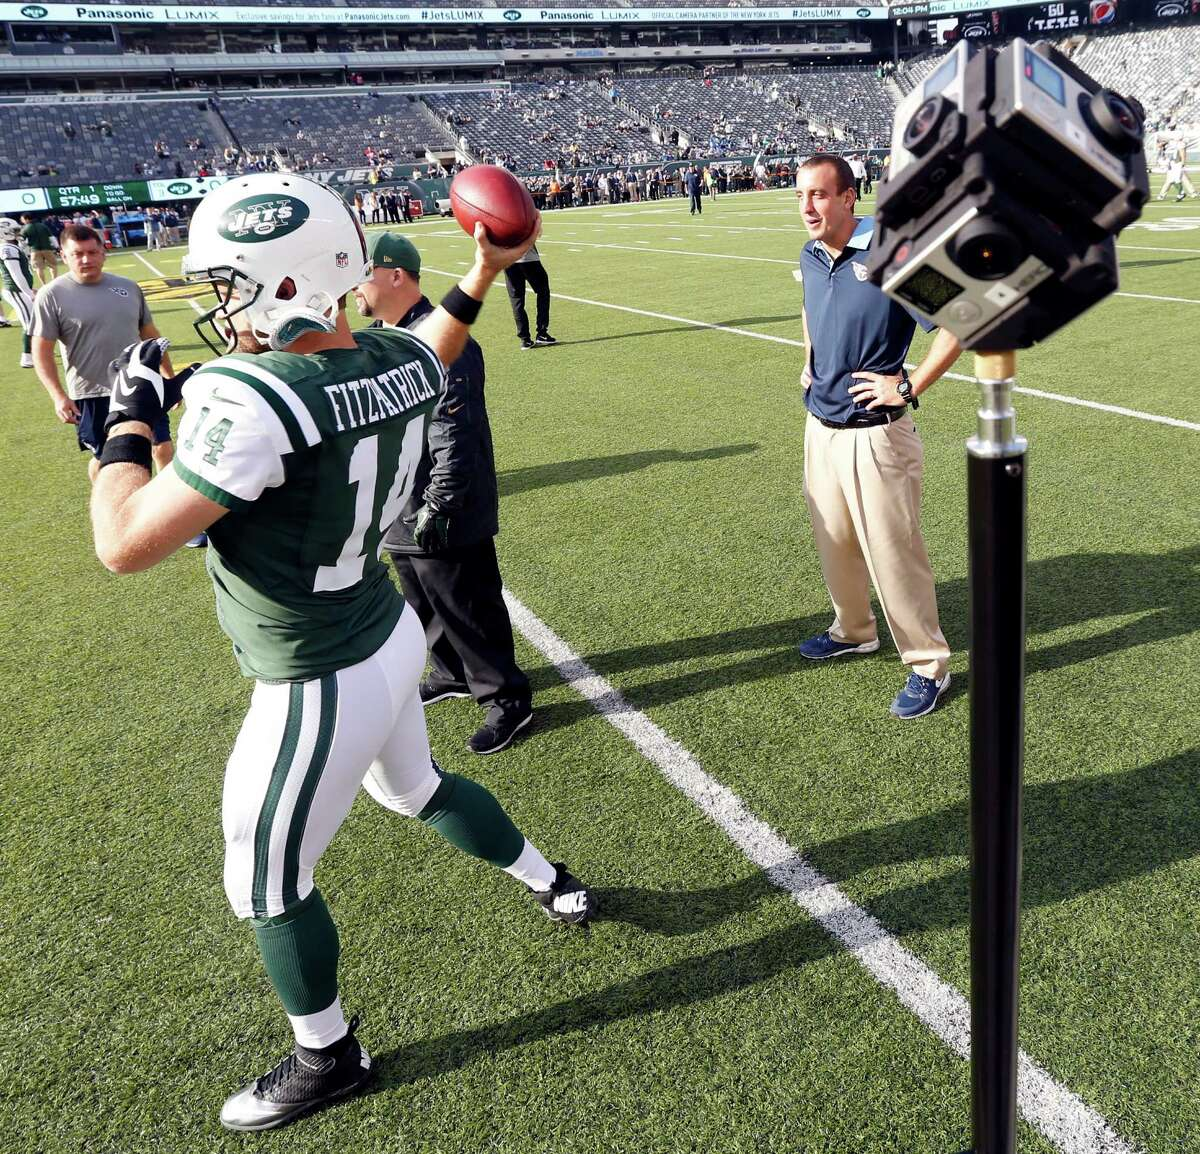 In a Sunday, Dec. 13, 2015, photo, New York Jets quarterback Ryan Fitzpatrick, left, warms up before an NFL football game against the Tennessee Titans as cameras film him at MetLife Stadium in East Rutherford, N.J. (AP Photo/Julio Cortez) ORG XMIT: NJJC211